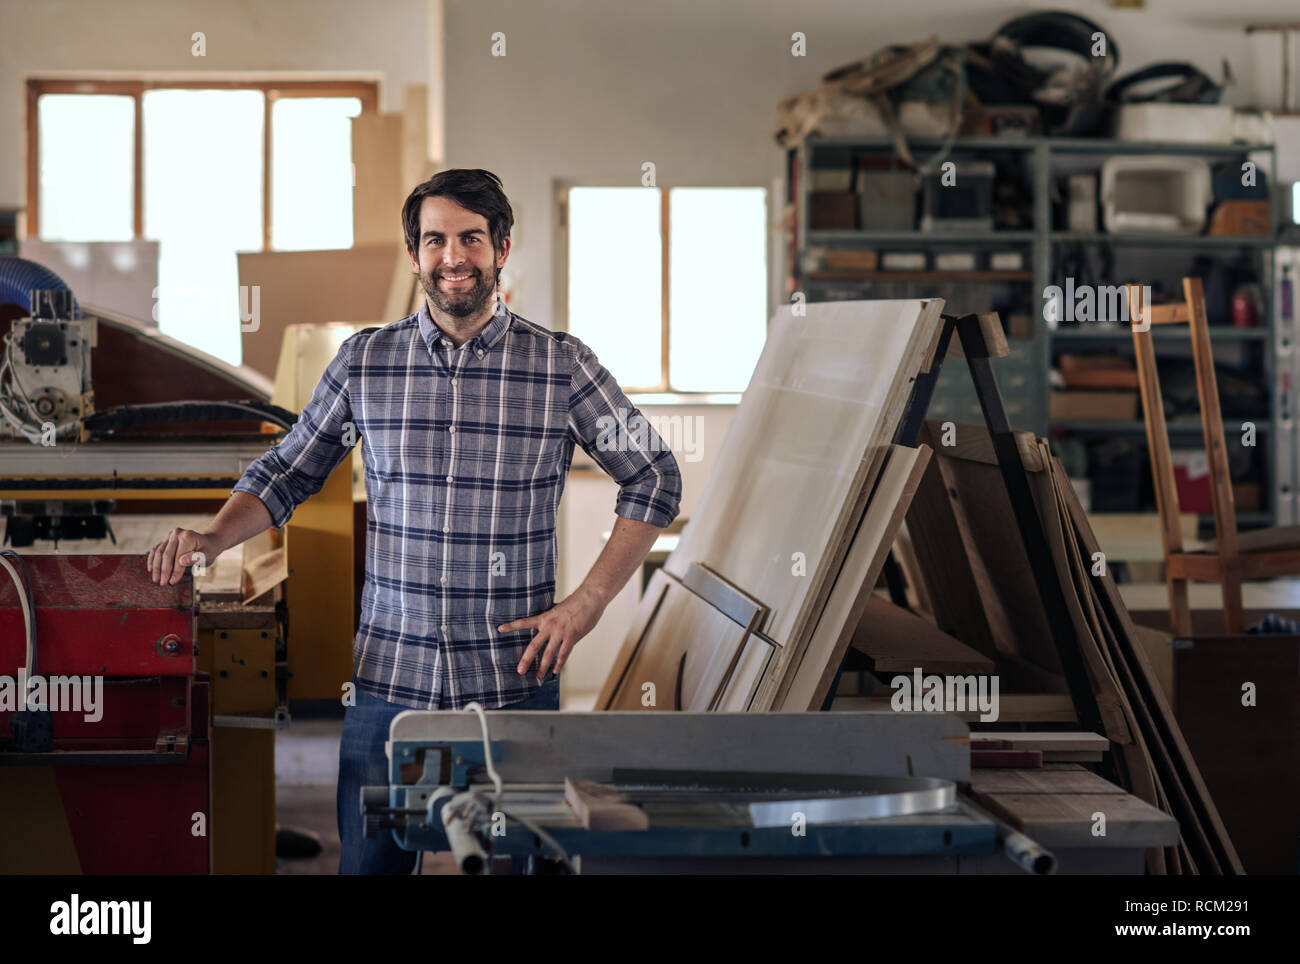 Woodworker smiling while standing by equipment in his workshop - Stock Image